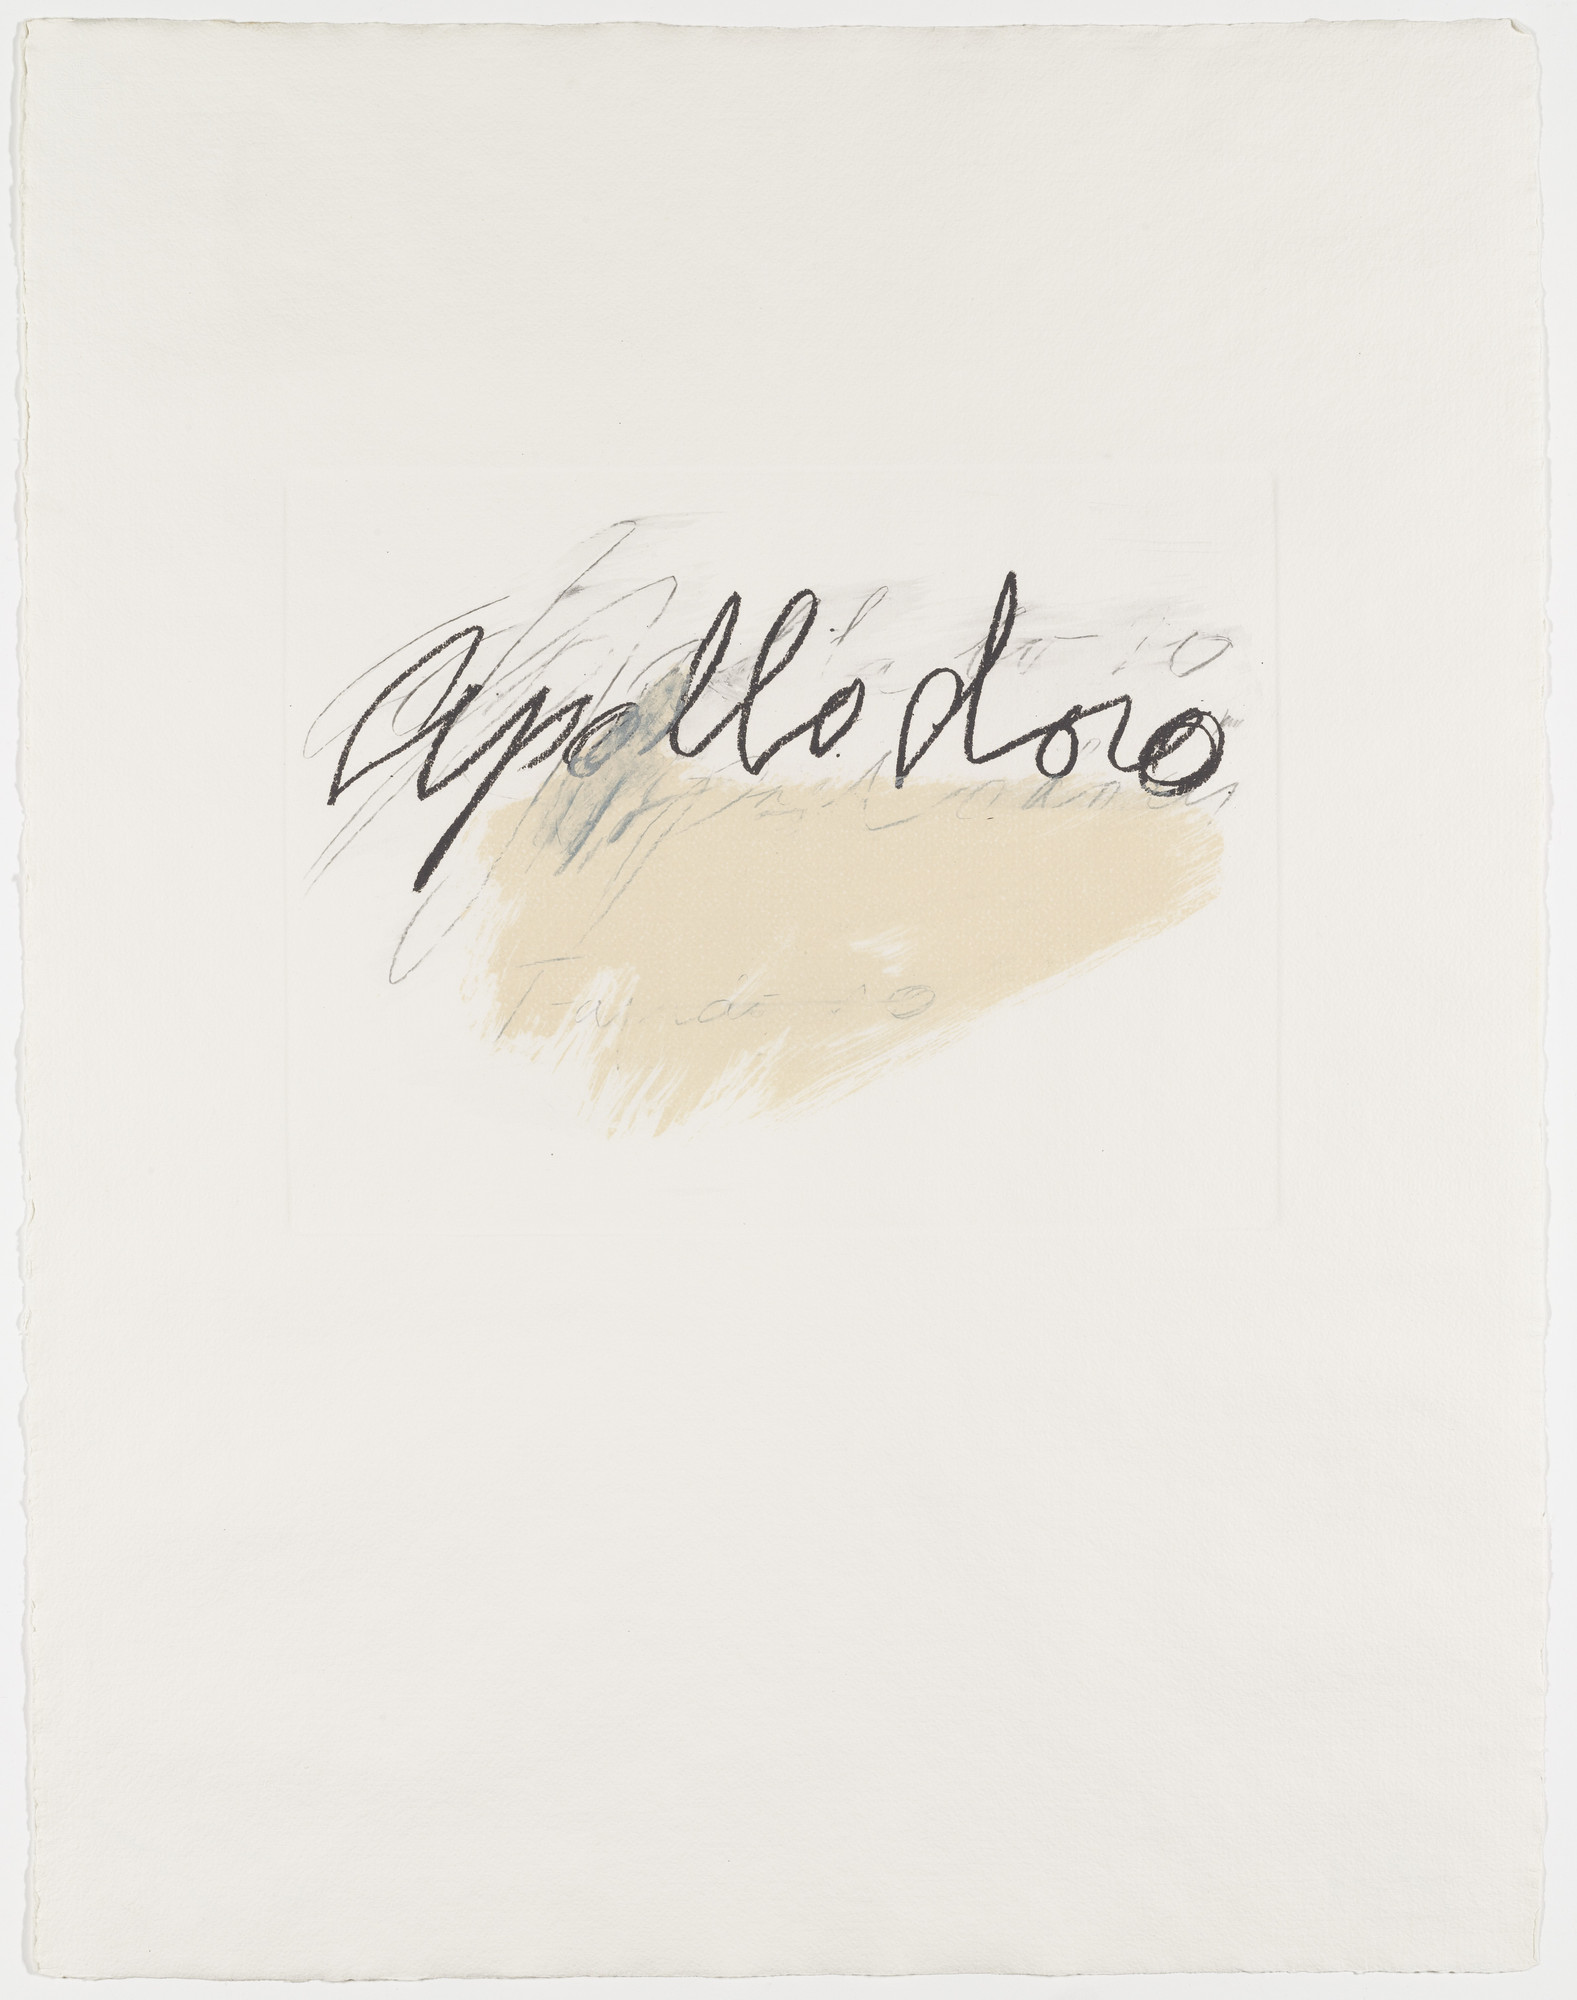 Cy Twombly. Apollodoro from the portfolio Six Latin Writers and Poets. 1975-1976